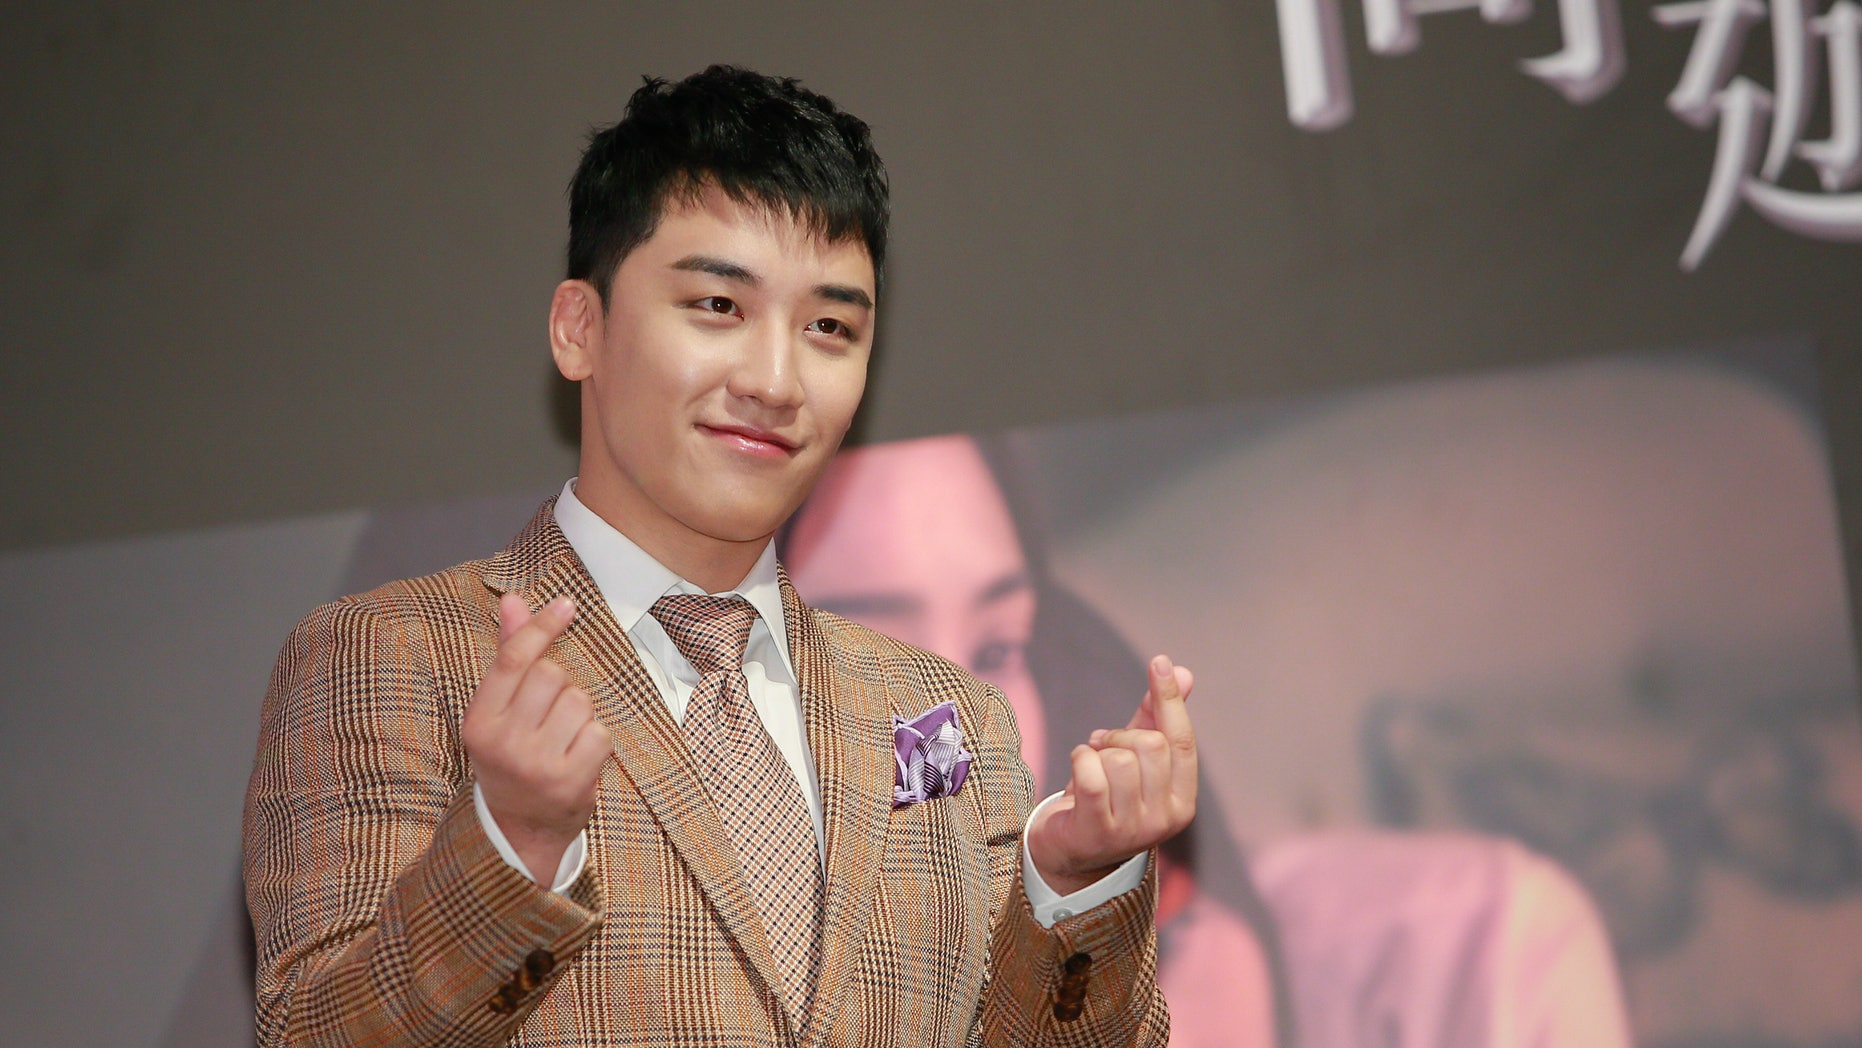 BIGBANG's Seungri offers to retire amid snowballing allegations